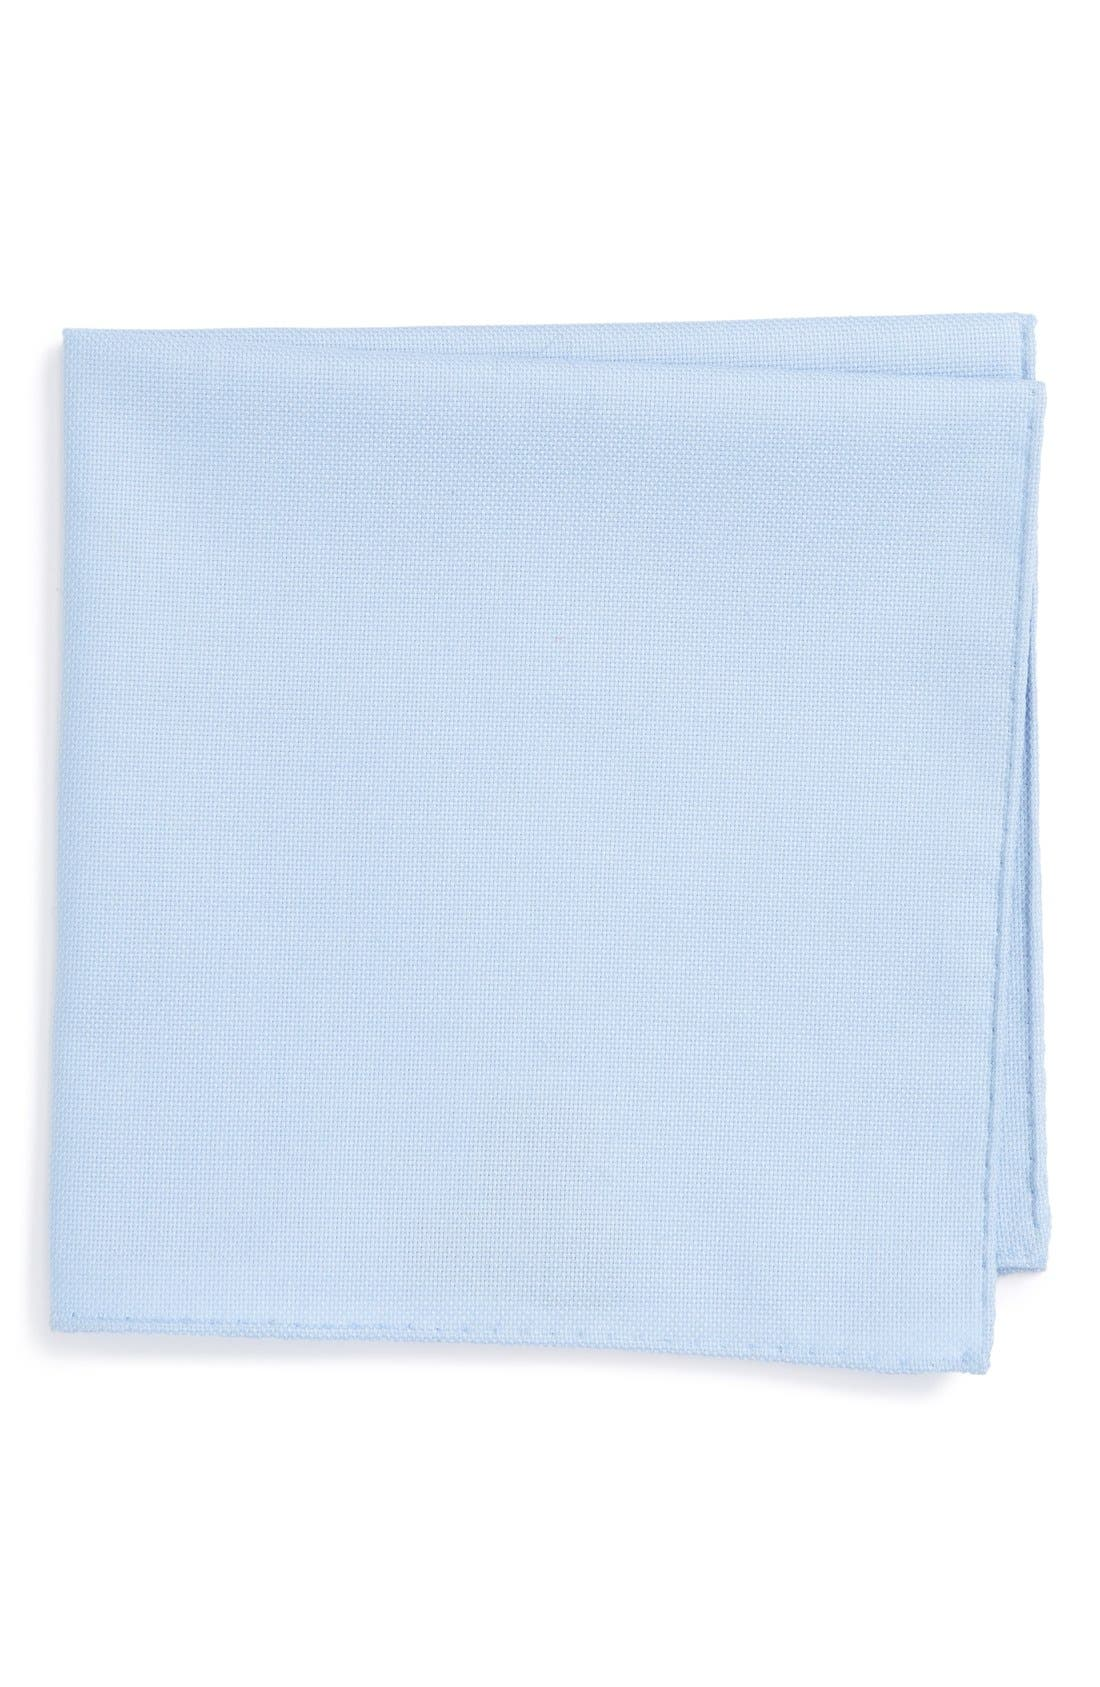 Main Image - Ted Baker London Solid Cotton Pocket Square